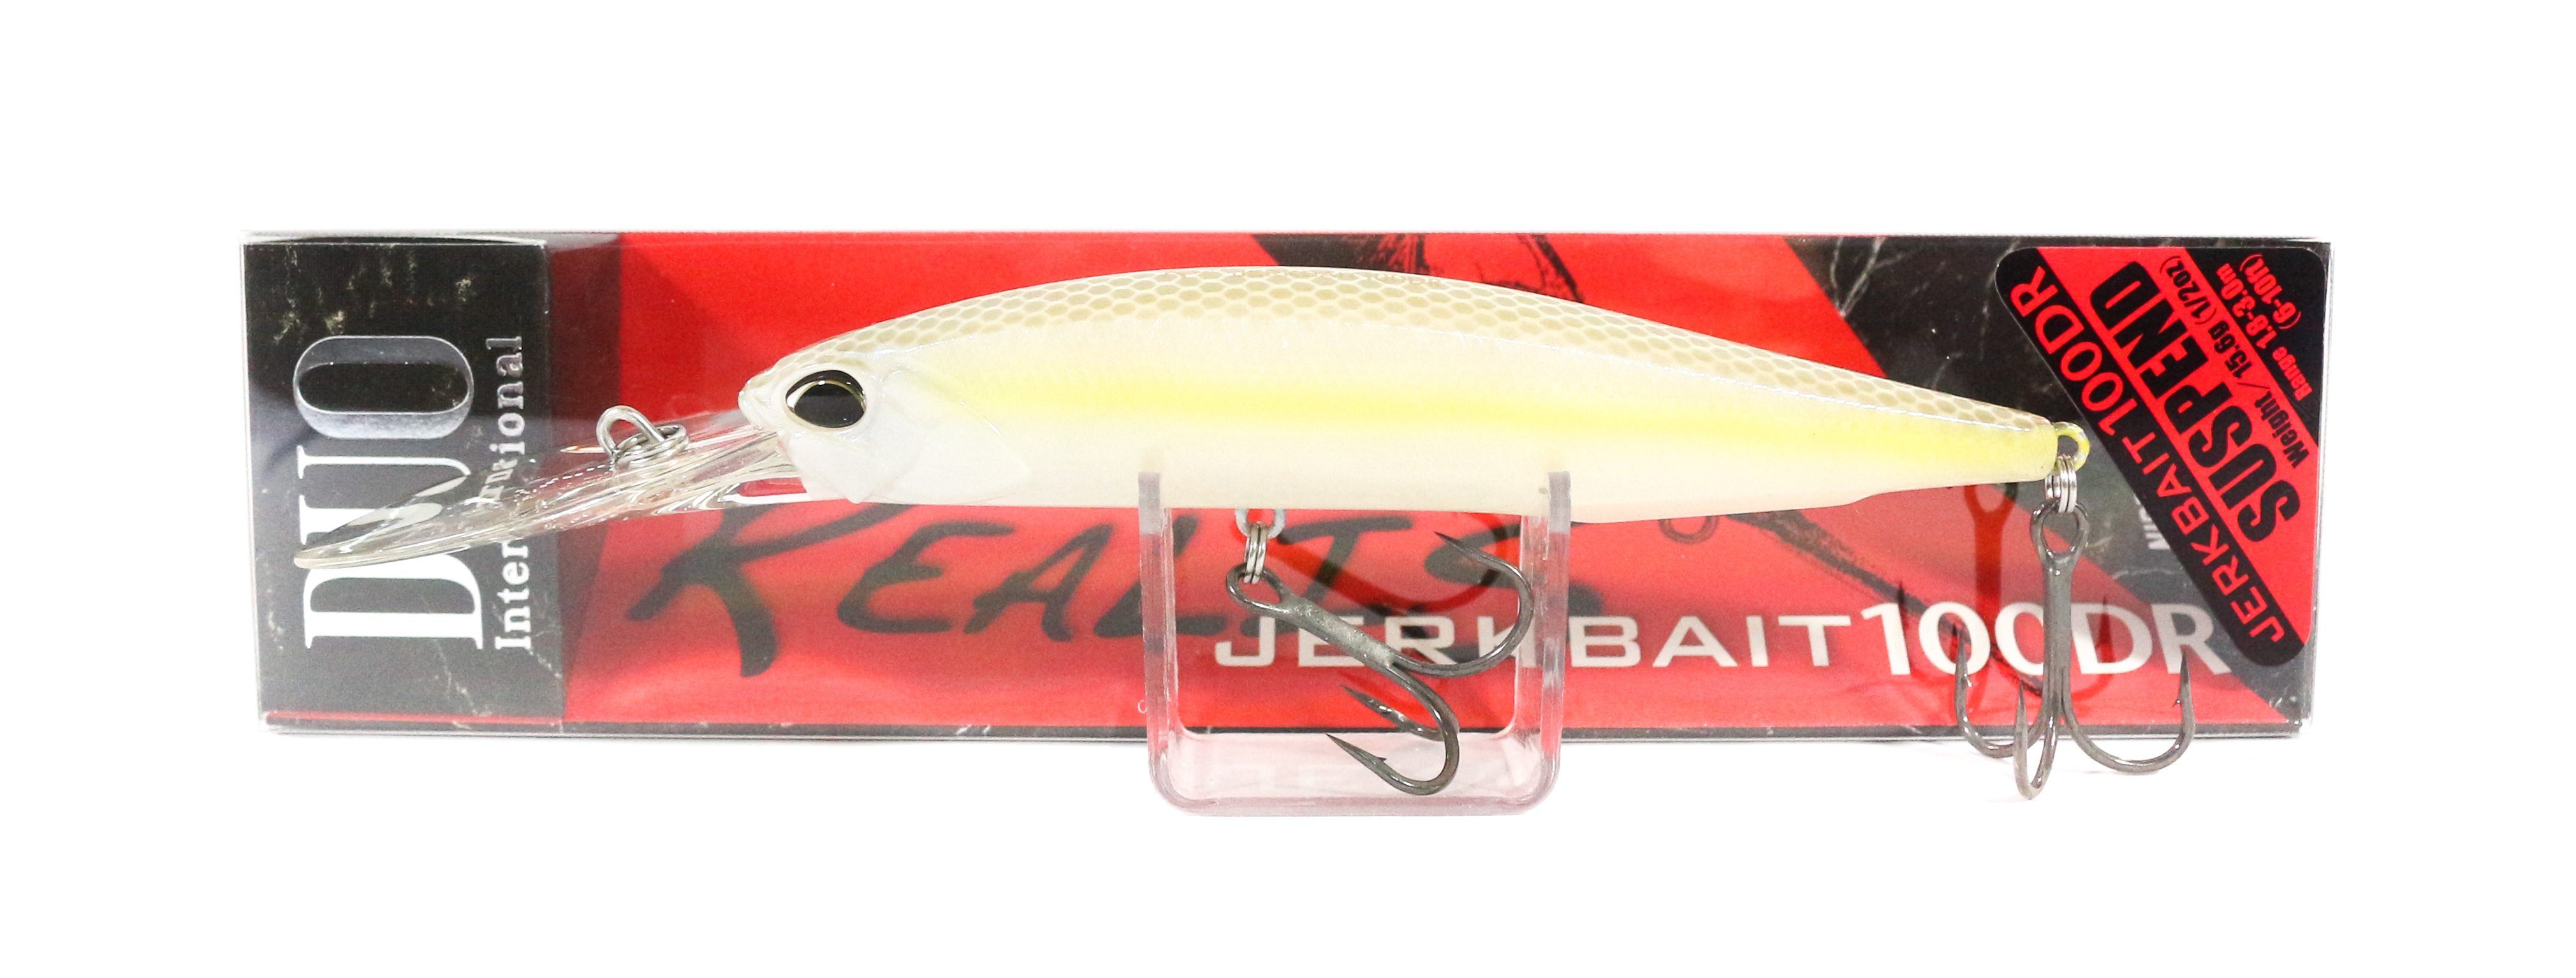 Duo Realis Jerkbait 100 DR Deep Diving Suspend Lure ACC3162 (6459)